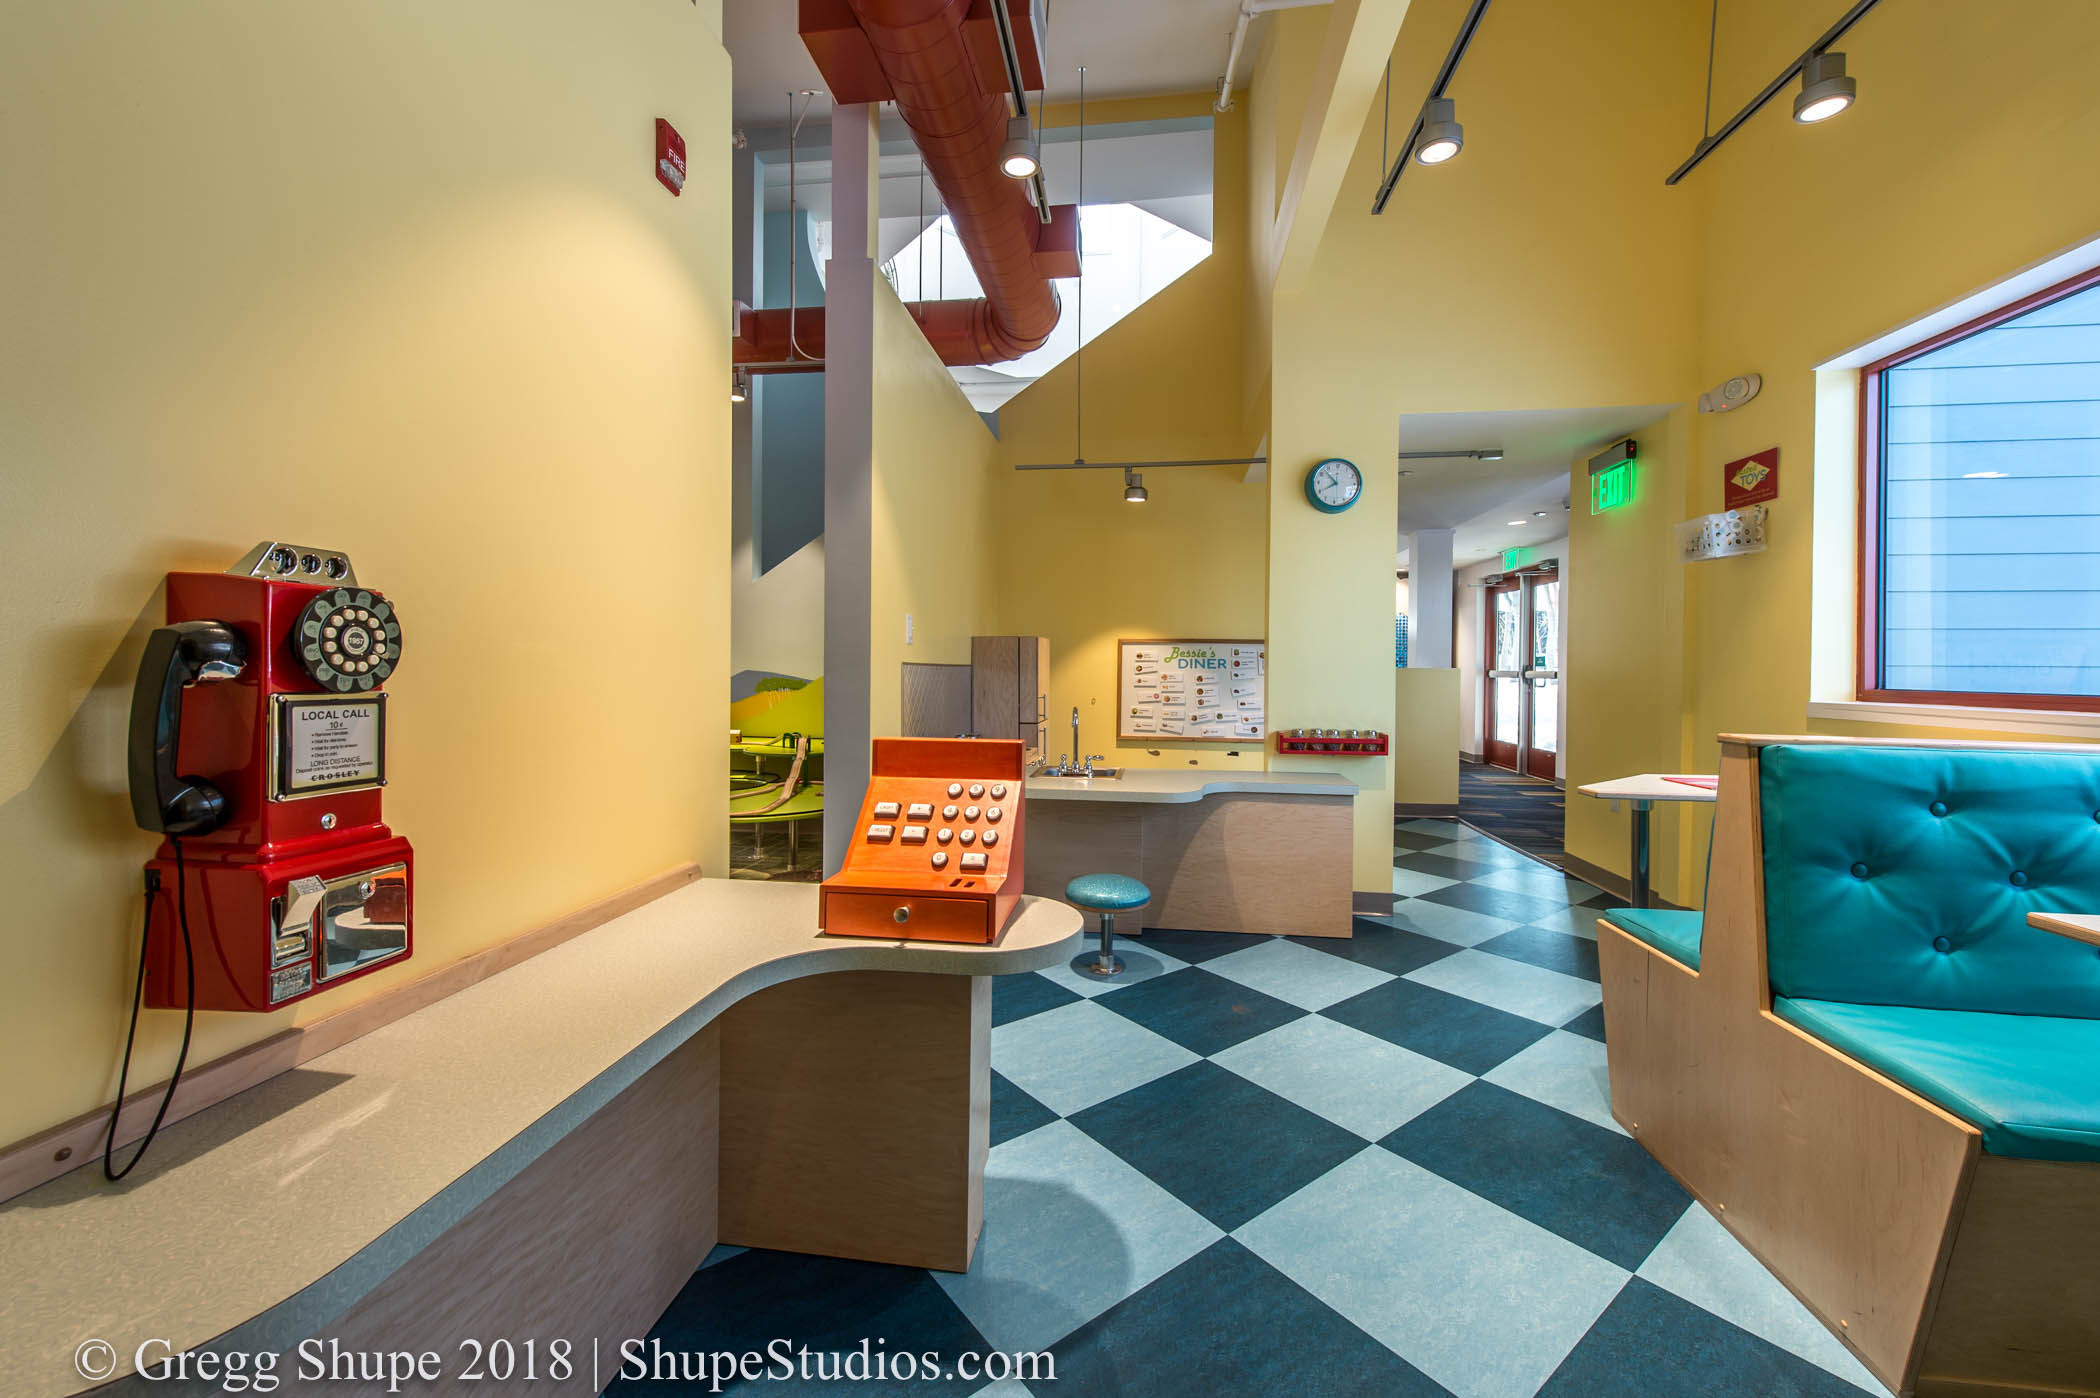 075_180319_Discovery_Museum_Acton.jpg